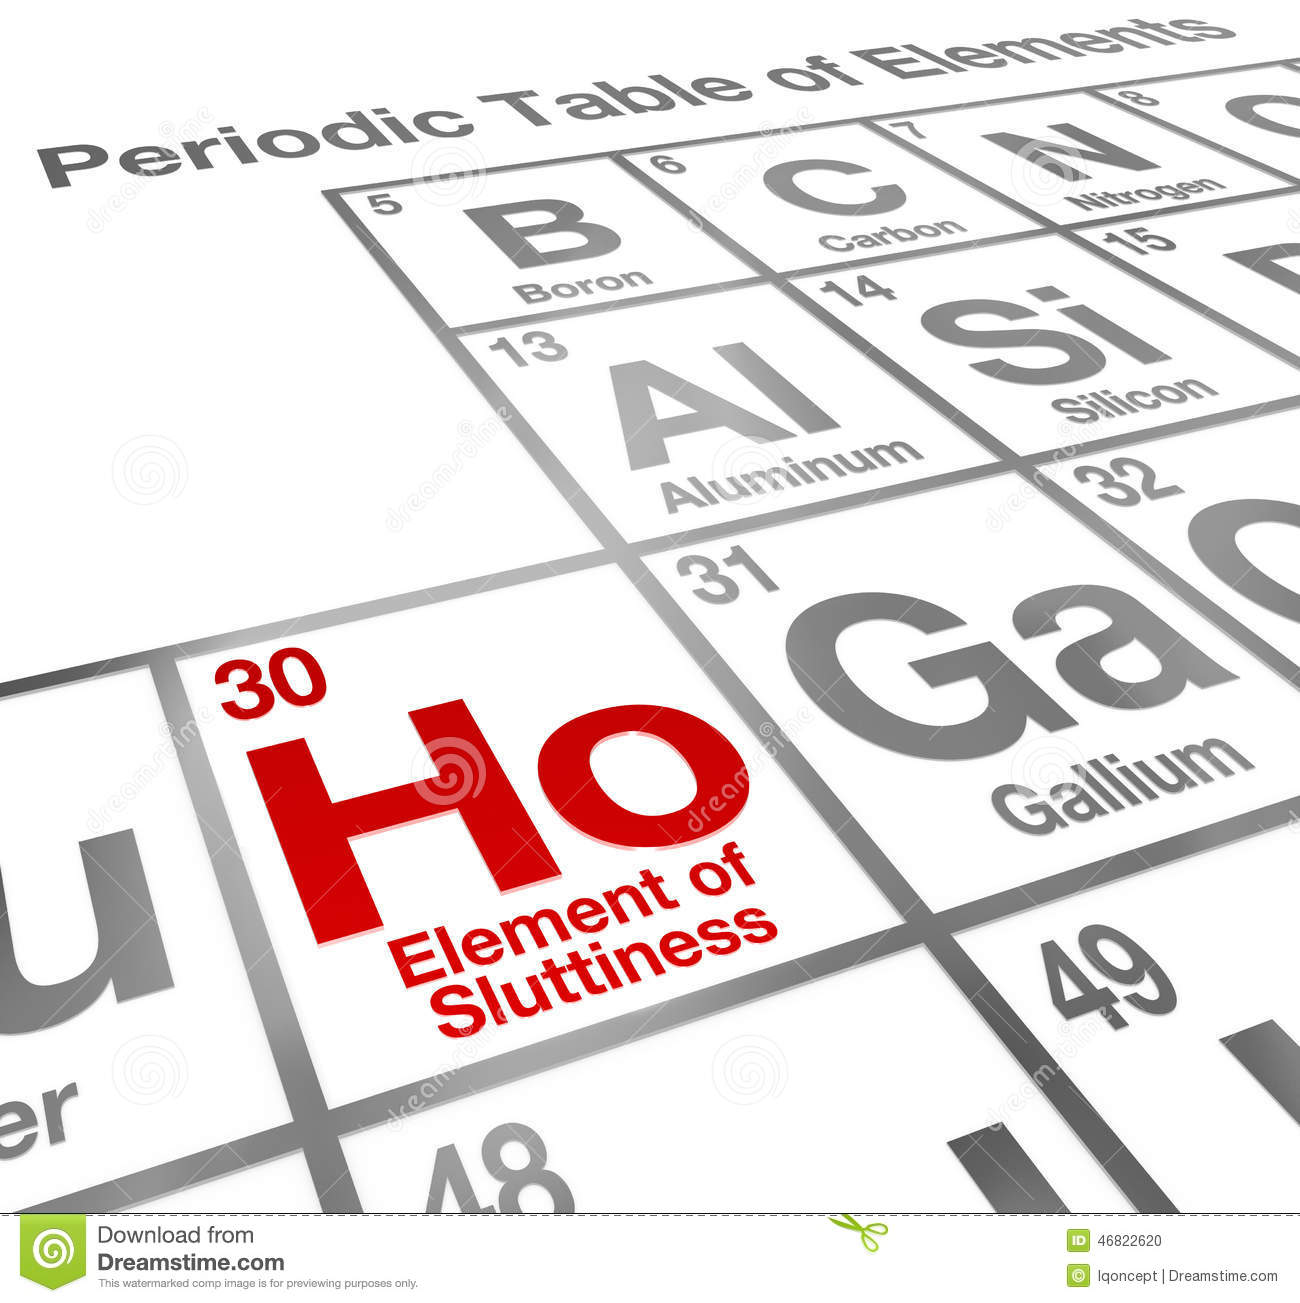 Ho element of sluttiness periodic table sex prostitute stock royalty free illustration download ho element of sluttiness periodic table gamestrikefo Gallery